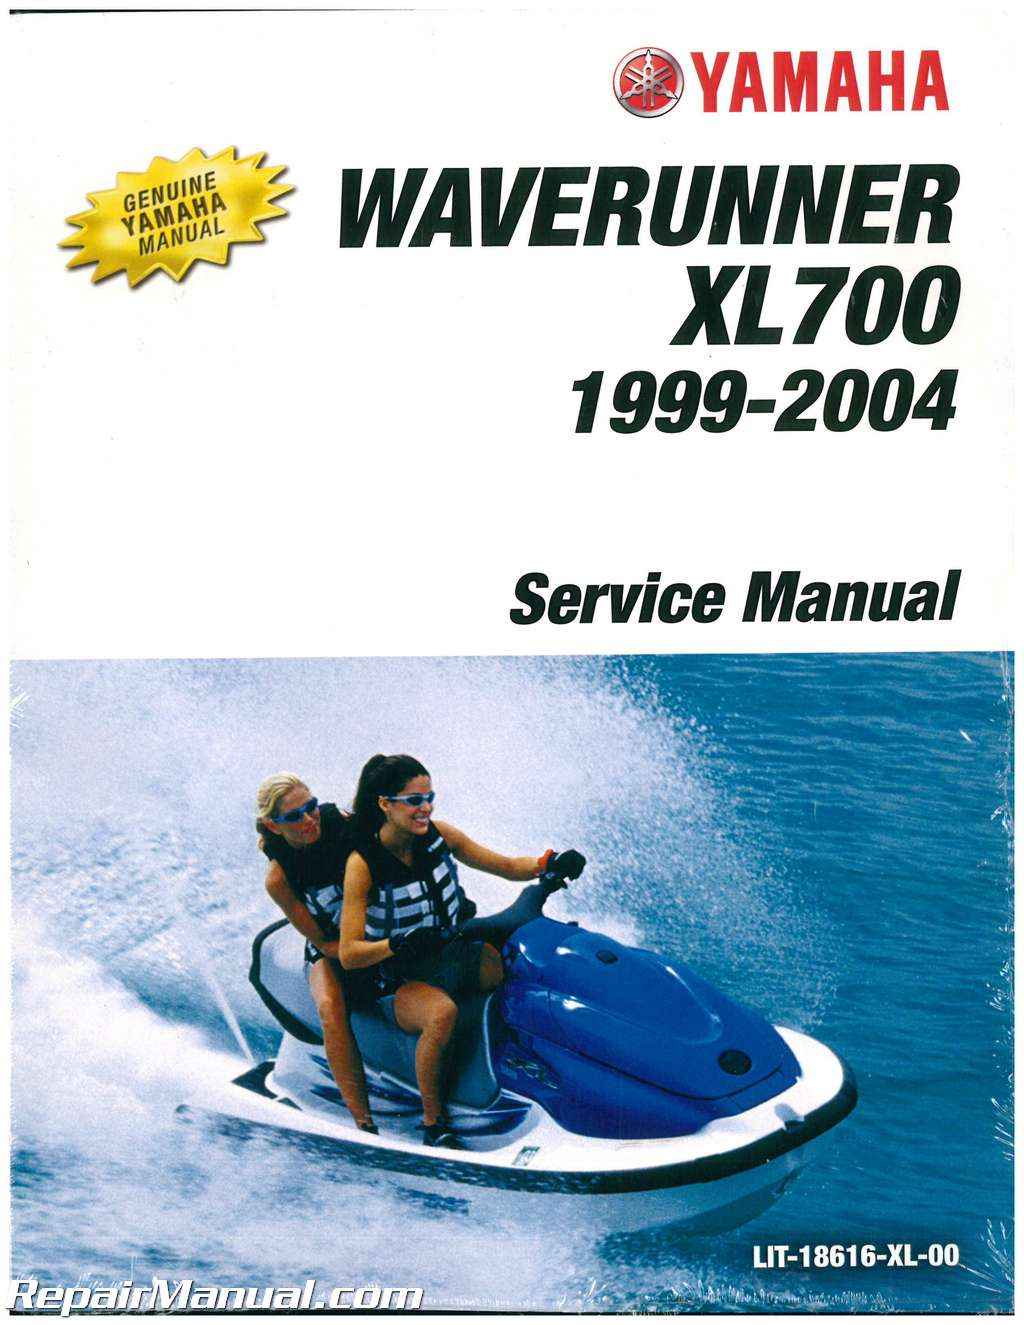 1999 2004 yamaha xl700 xl760 waverunner service manual rh repairmanual com yamaha waverunner repair manual free yamaha waverunner fx 140 service manual